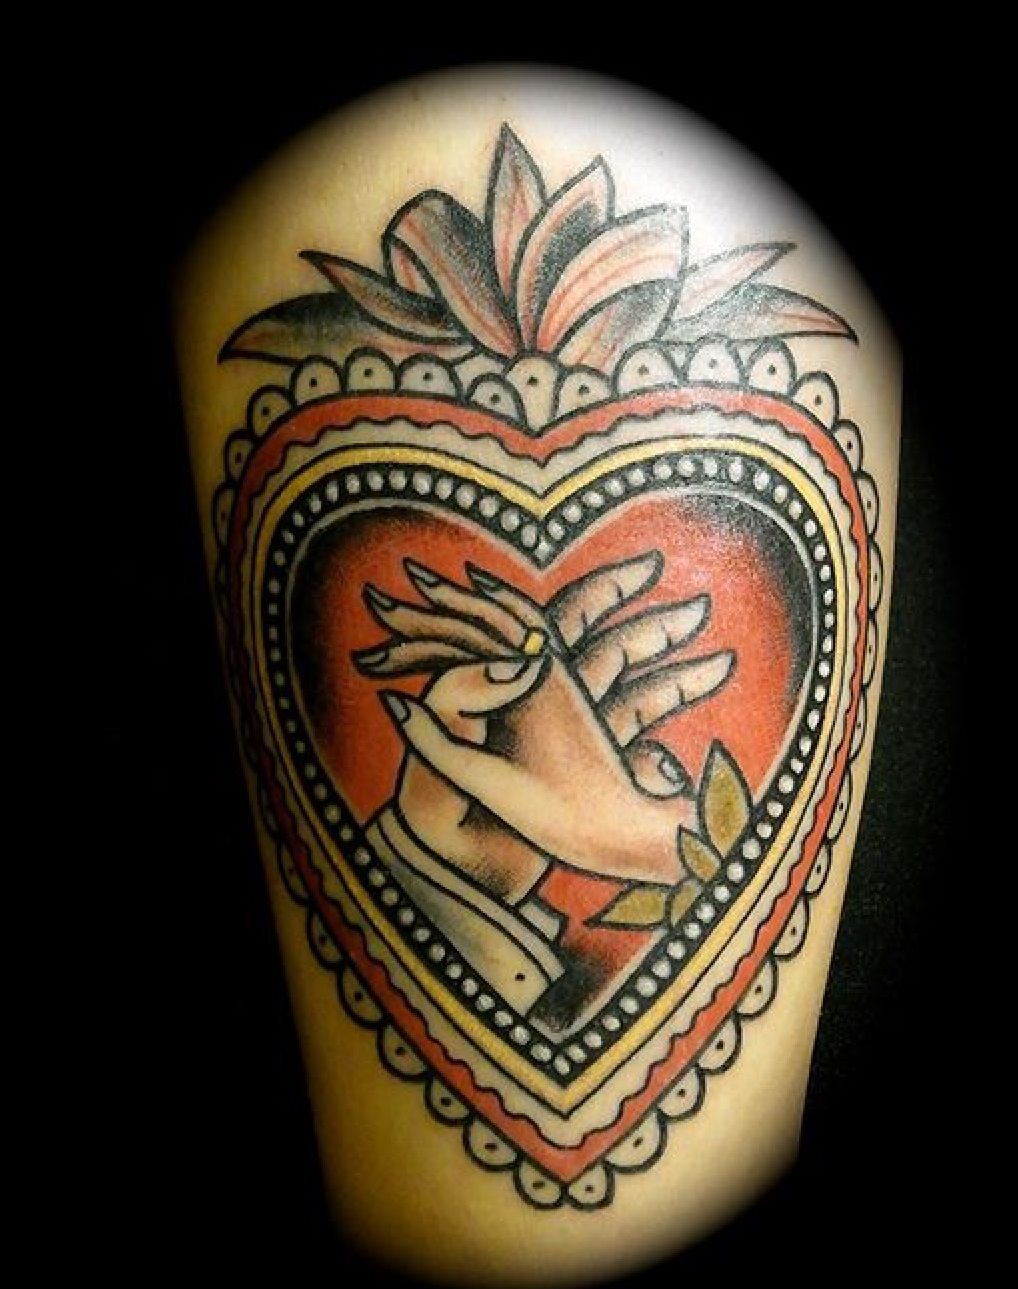 Pin by MAD NY DESIGN on OLD SCHOOL TATTOO (With images